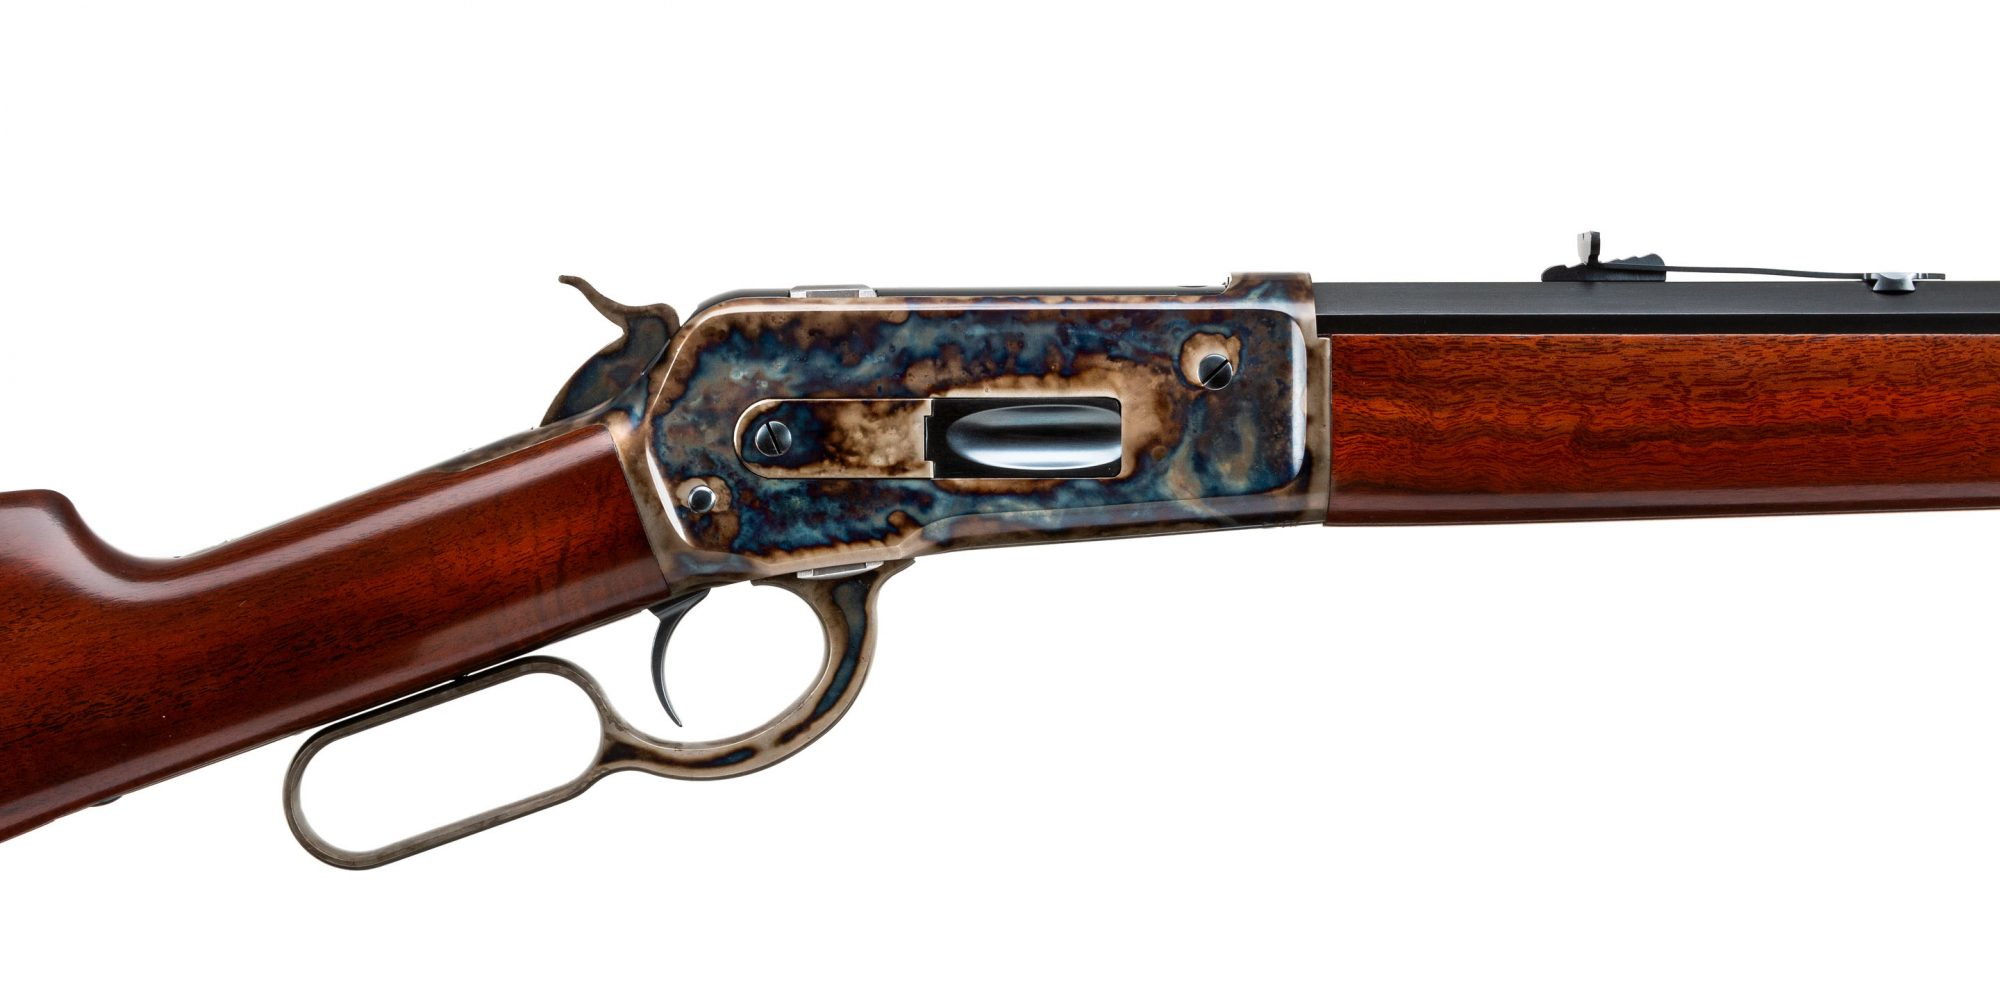 Photo of a Winchester Model 1886 reproduction - The Turnbull Restoration Model 1886 features classic era metal finishes including bone charcoal color case hardening, charcoal bluing and rust bluing